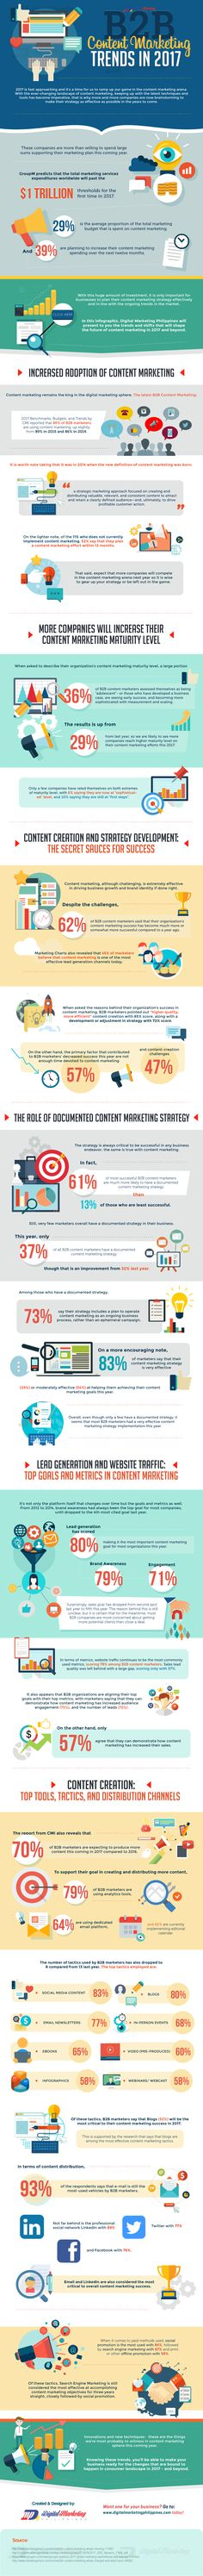 B2B Content Marketing Trends in 2017 [Infographic]